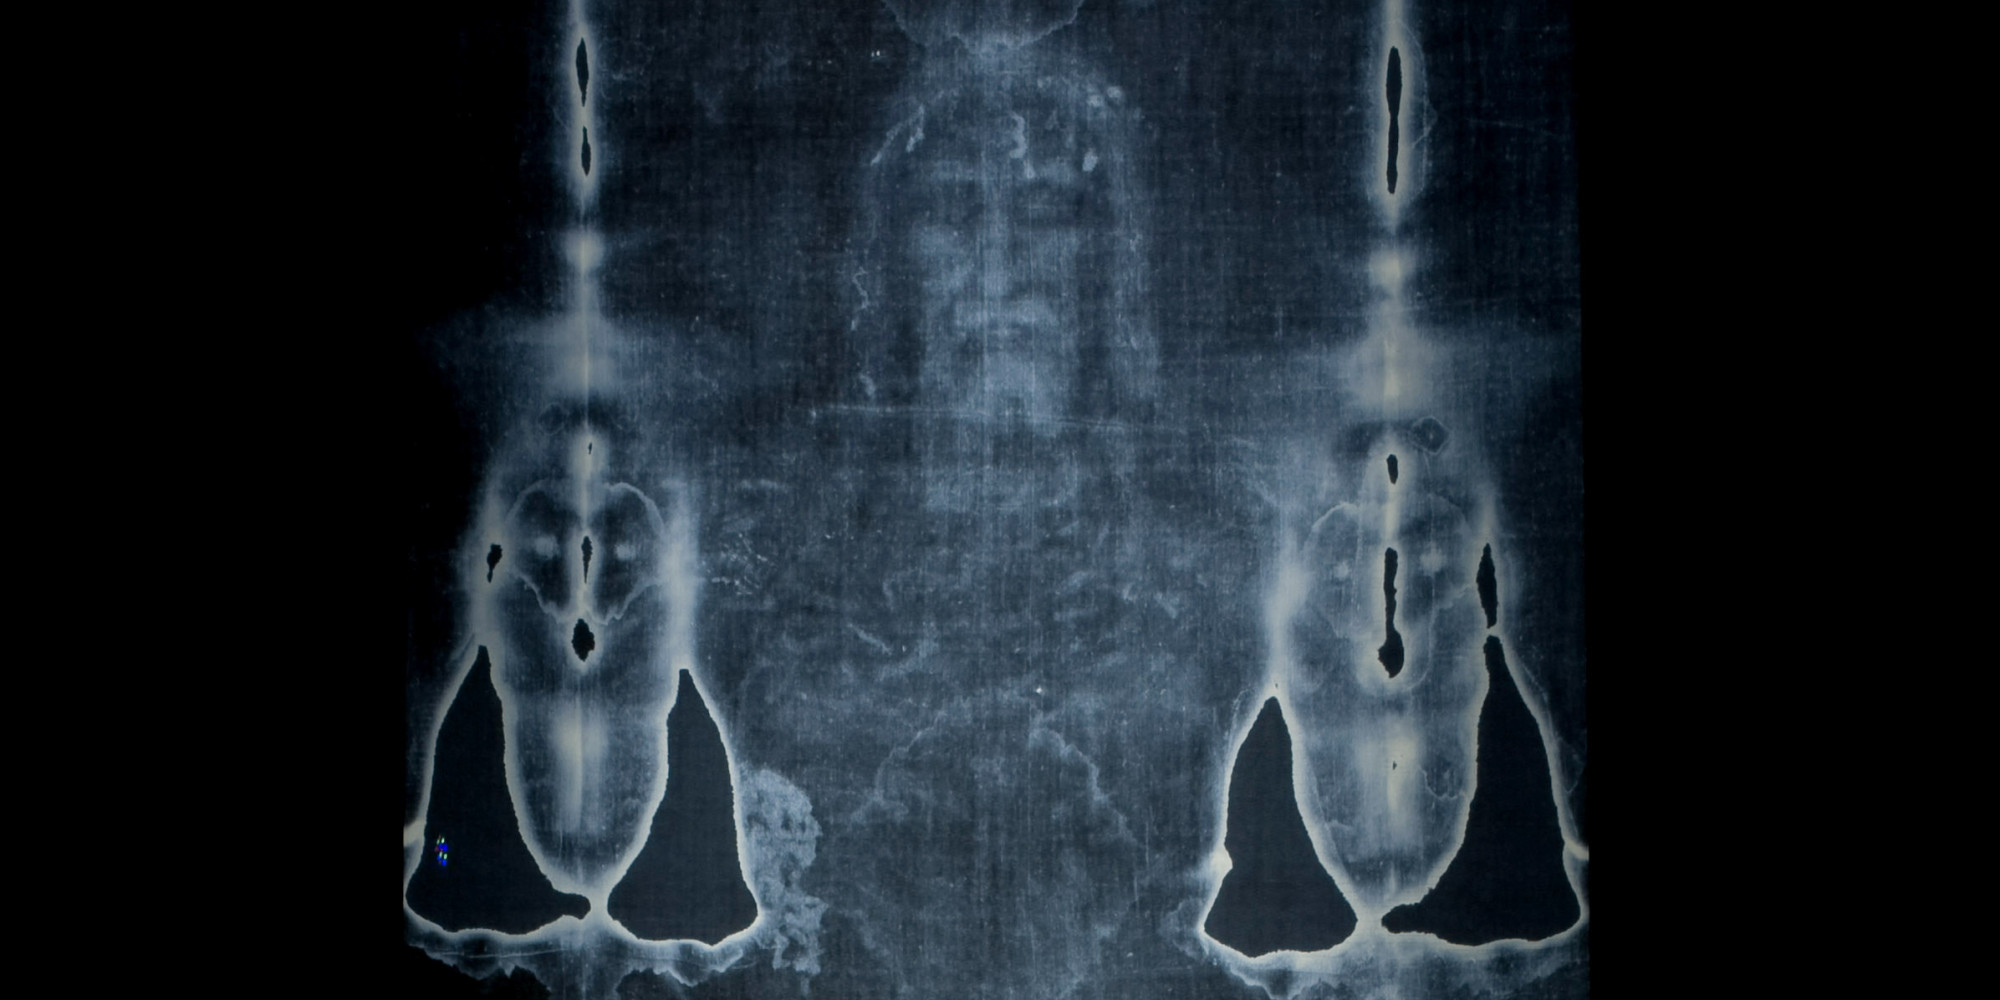 the shroud of turin The shroud of turin is a 14' 5 x 3' 7 linen cloth that holds the image of a crucified man that matches the description of the manner in which jesus of nazareth was crucified the front and the back of the crucified man is shown, the front on one end of the cloth and the back on the other end with the head meeting towards the middle.